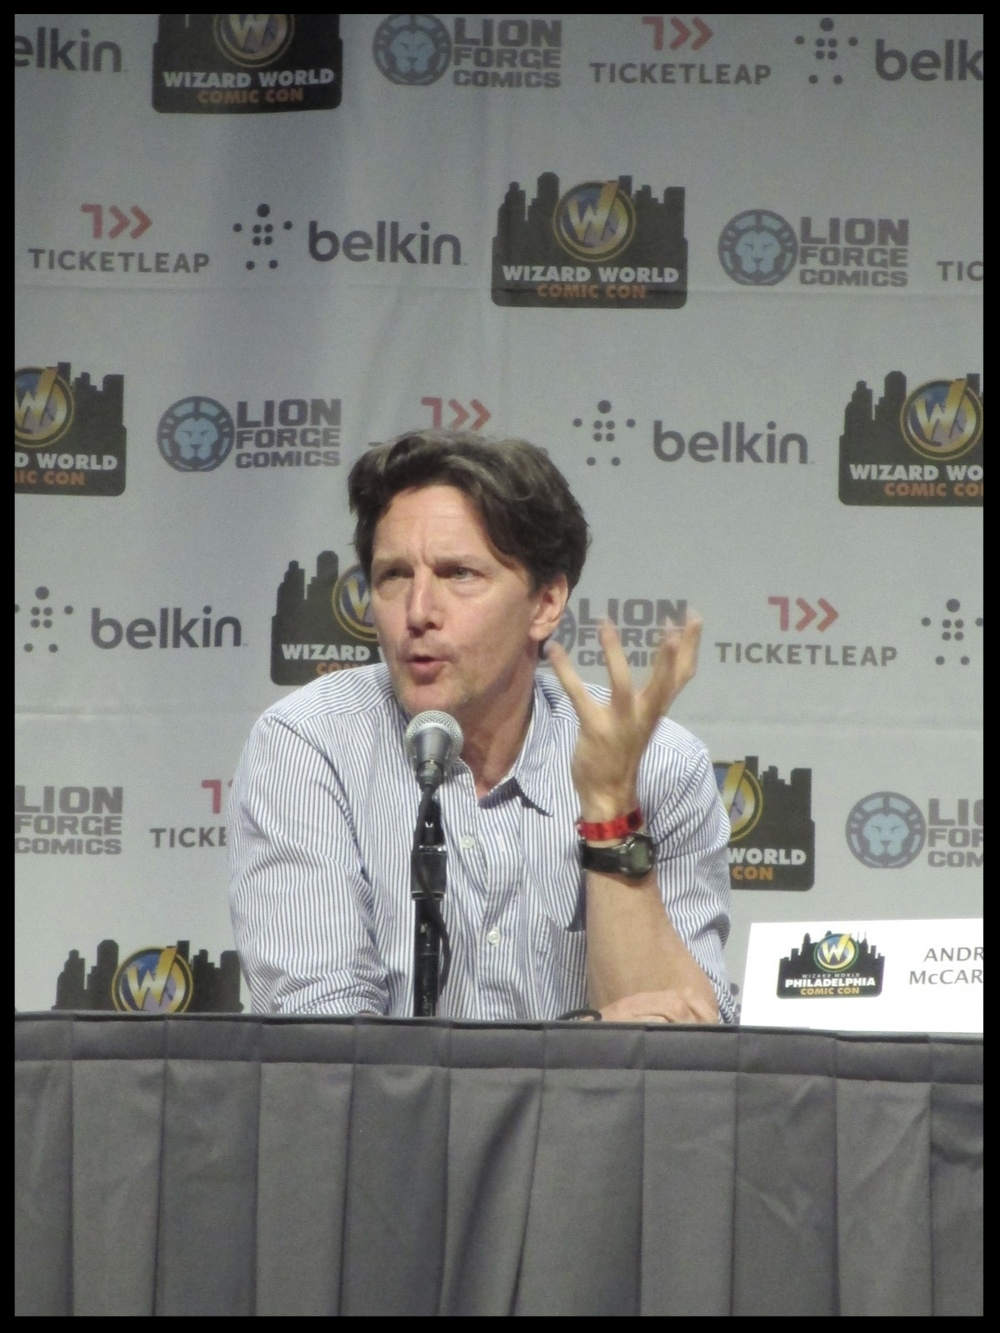 Philly comic con 13 Andrew McCarthy.jpg